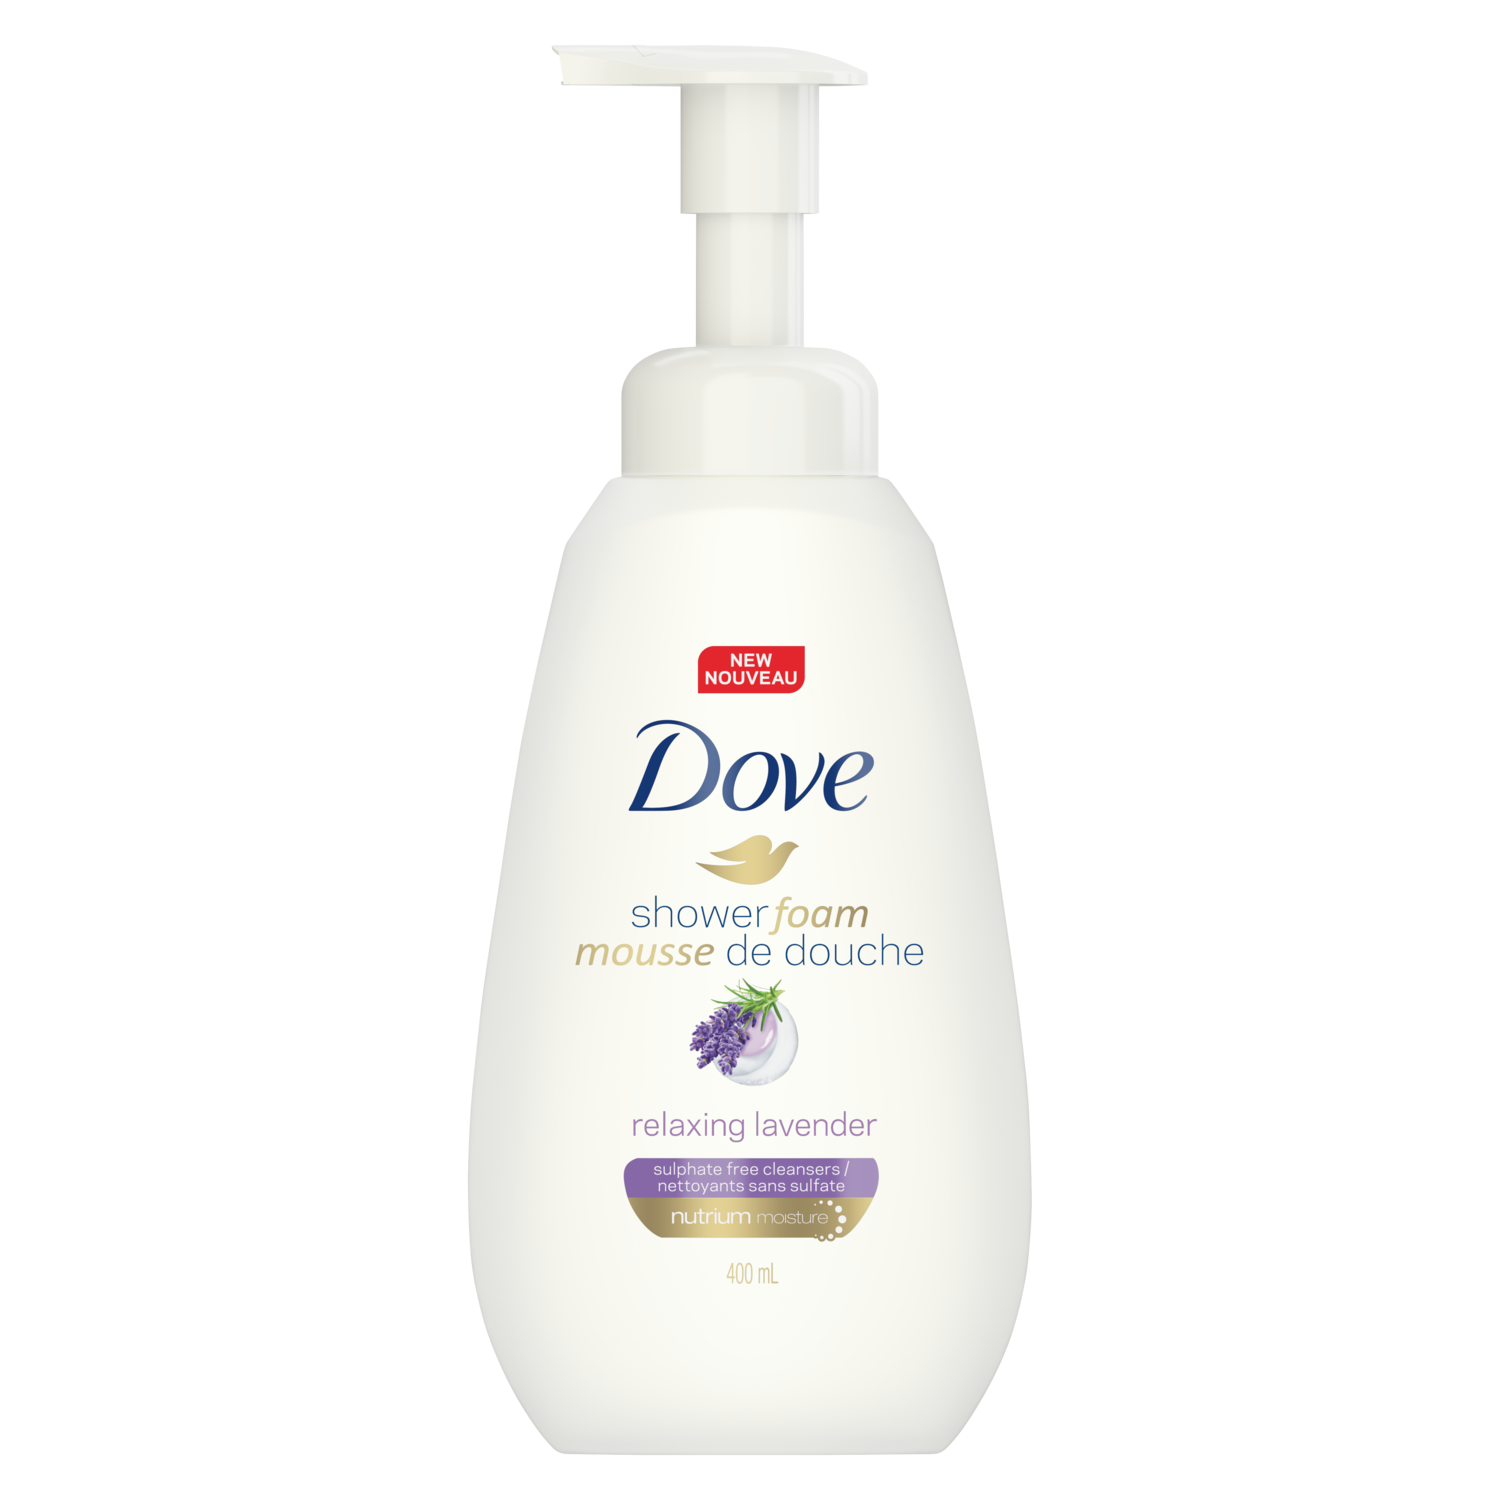 dove.com - Purely Pampering Relaxing Lavender Shower Foam